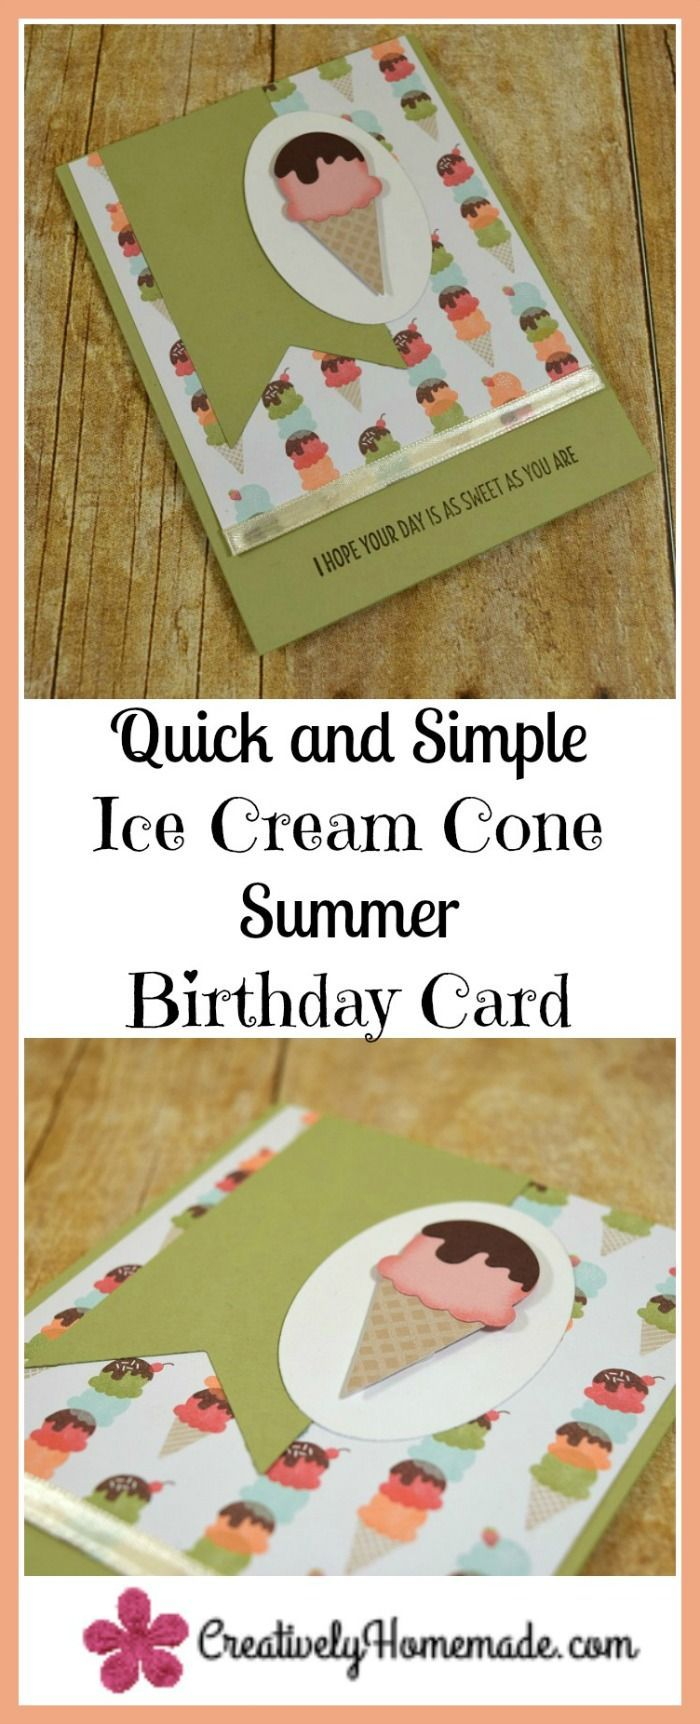 Cute Ice Cream Cone Summer Birthday Cards Homemade Birthday Cards